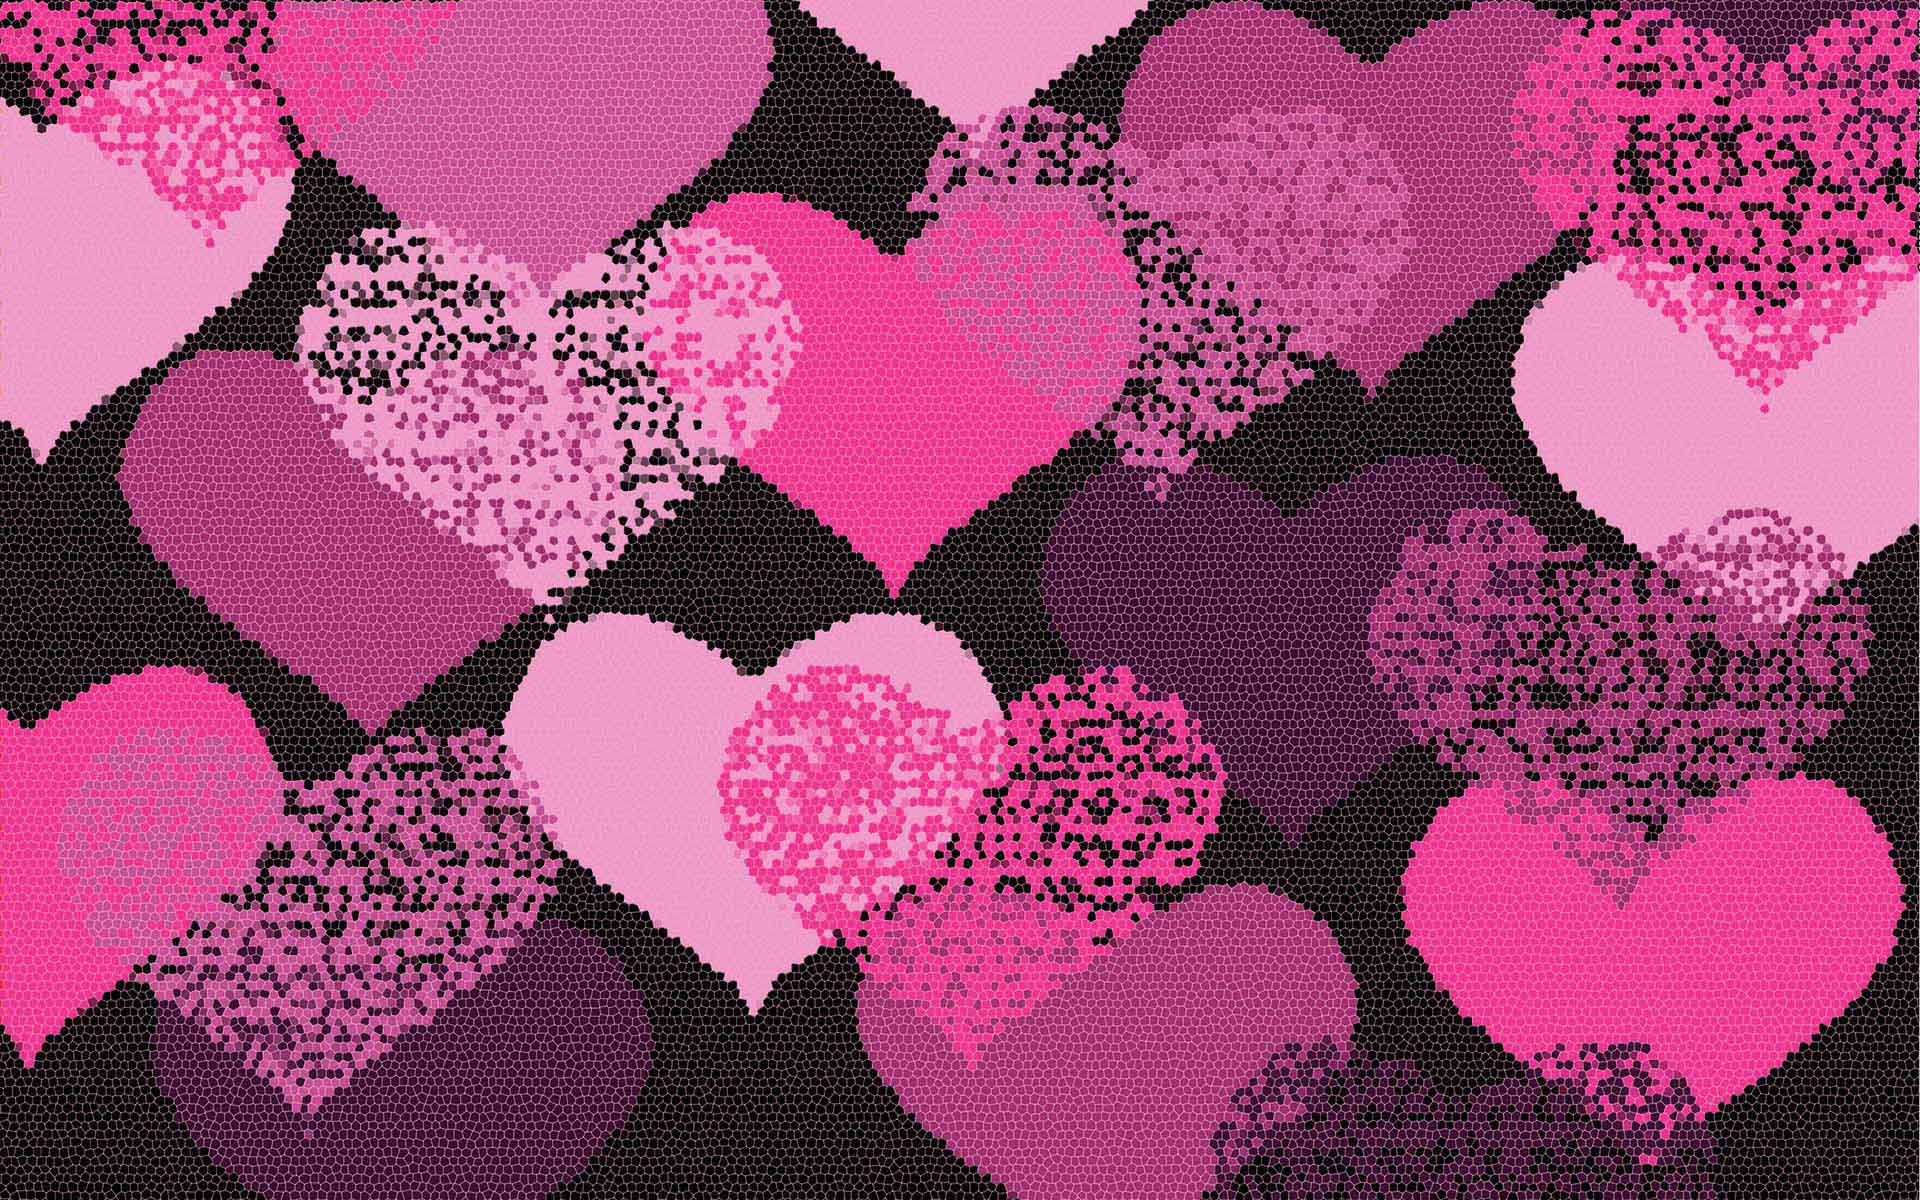 Pink Love Wallpaper: Love Pink Backgrounds